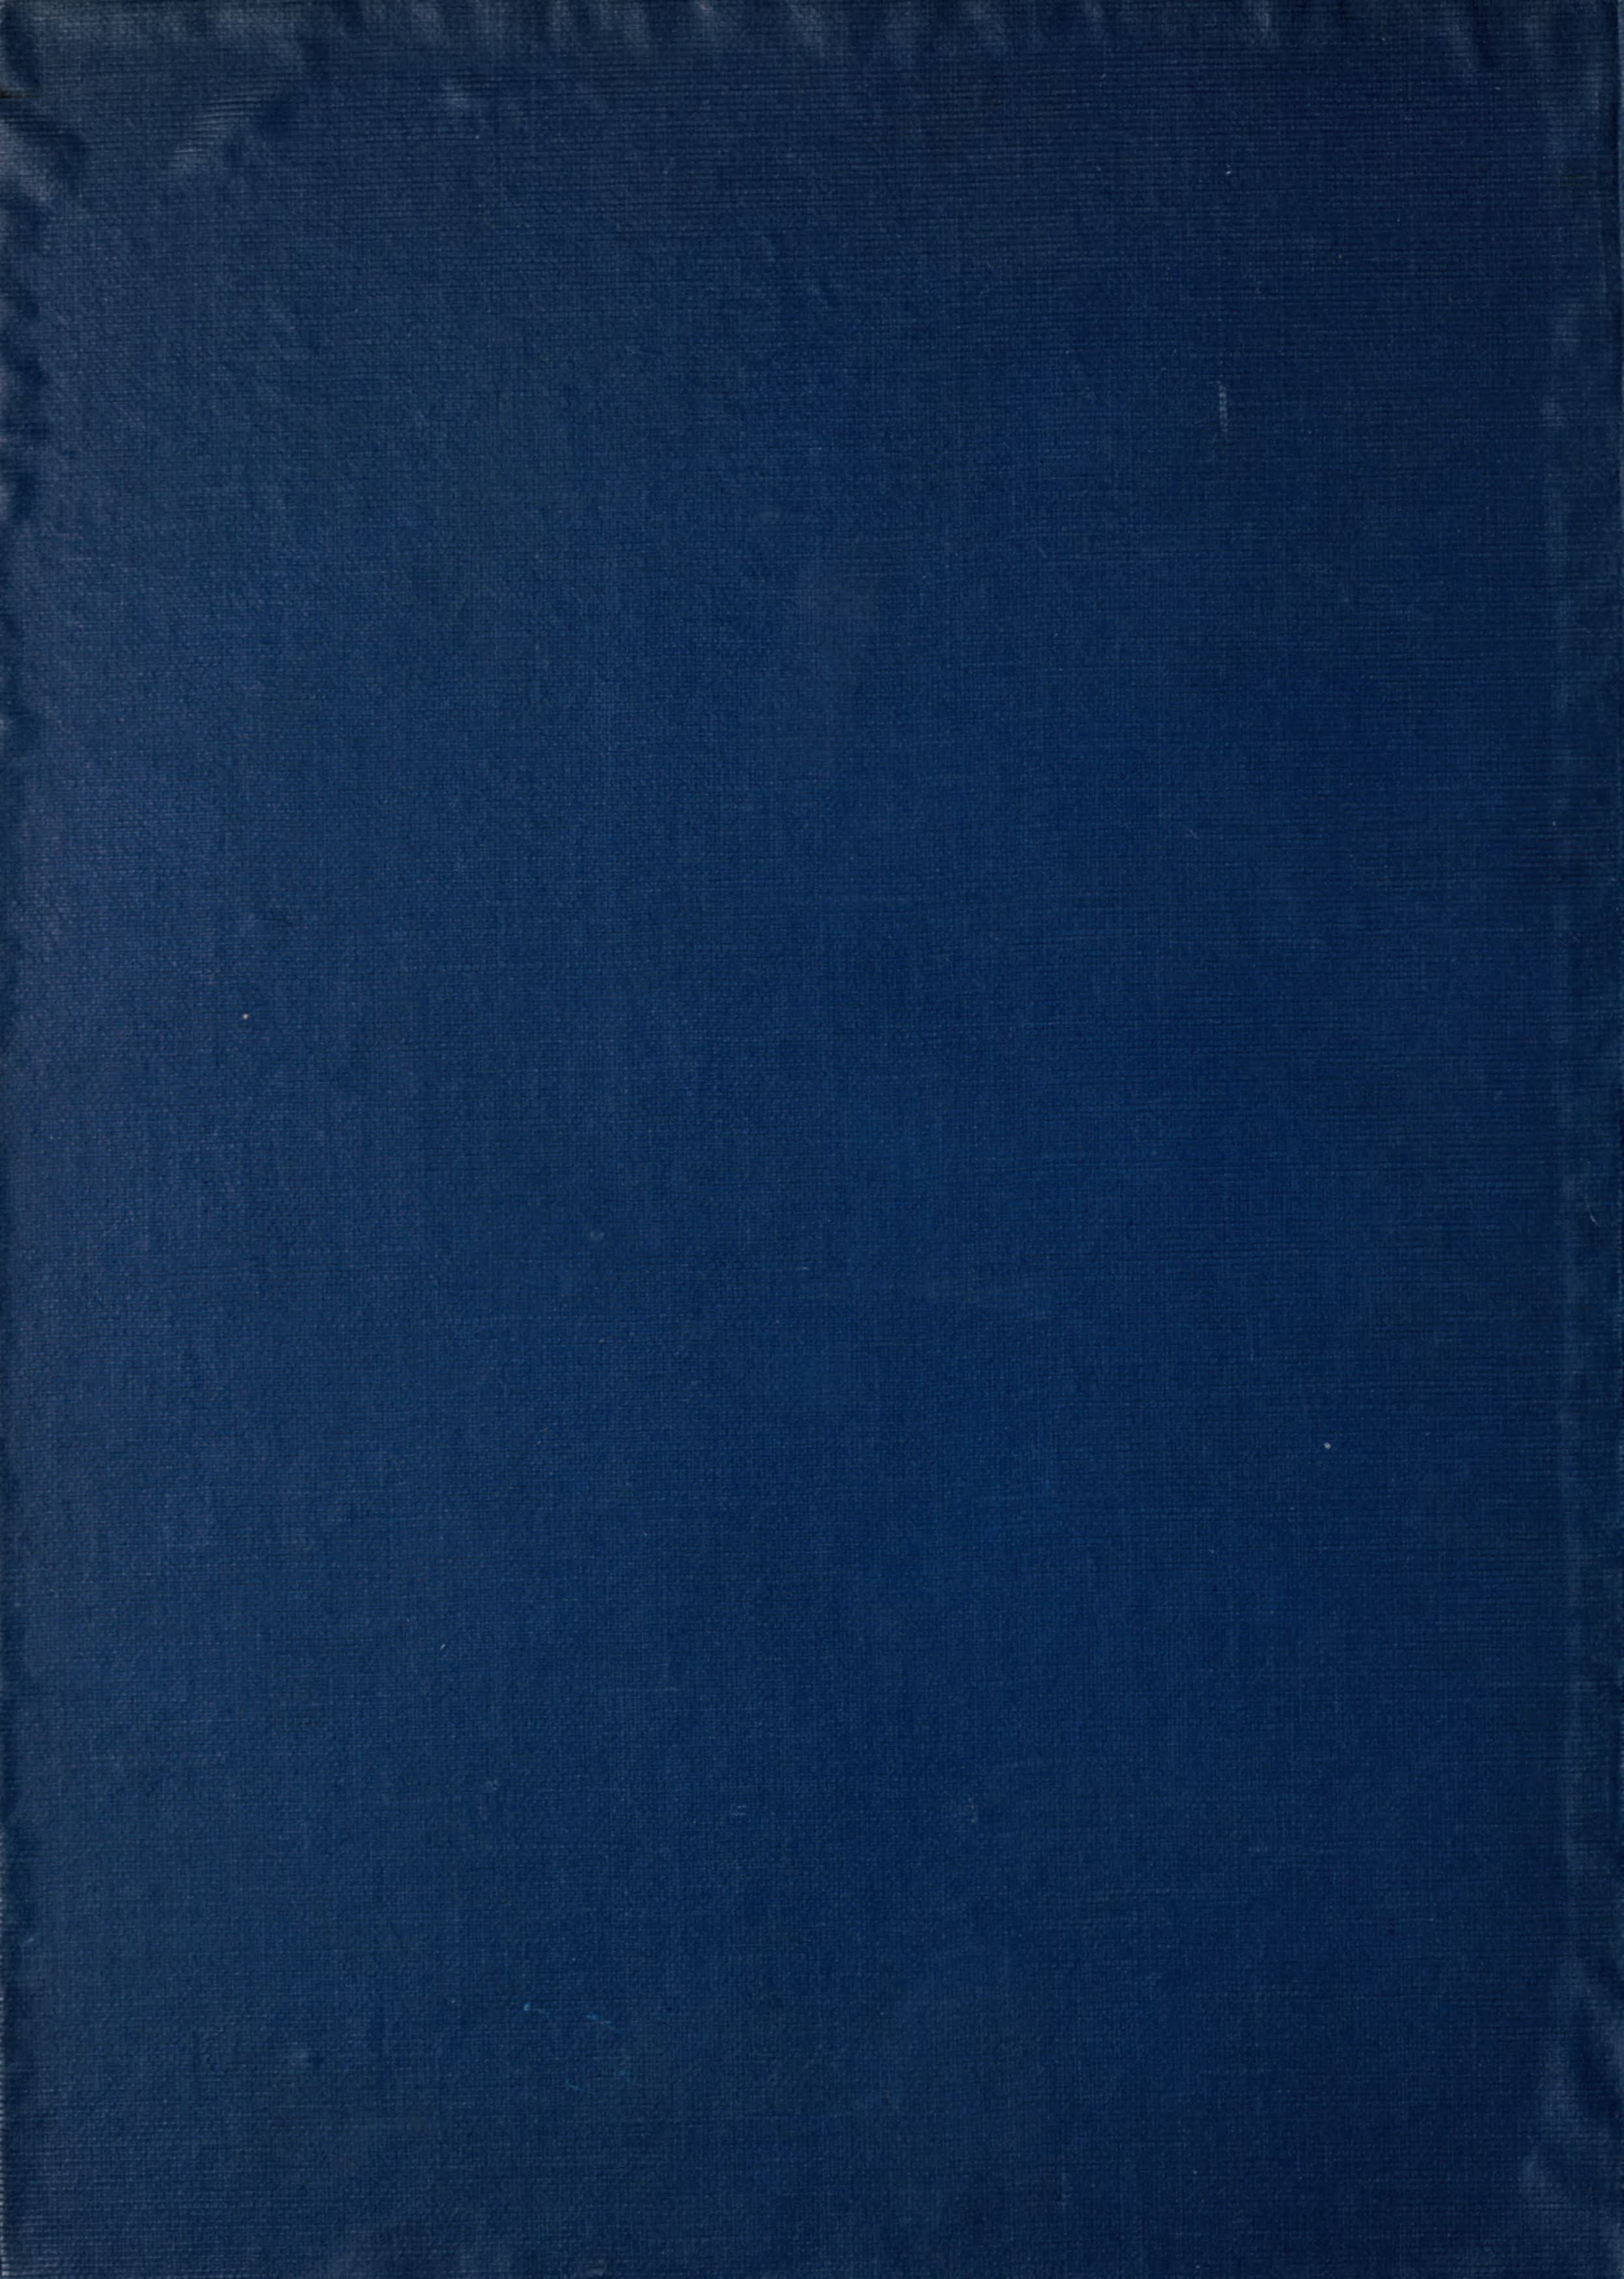 Isle of Wight Painted and Described - Back Cover (1908)